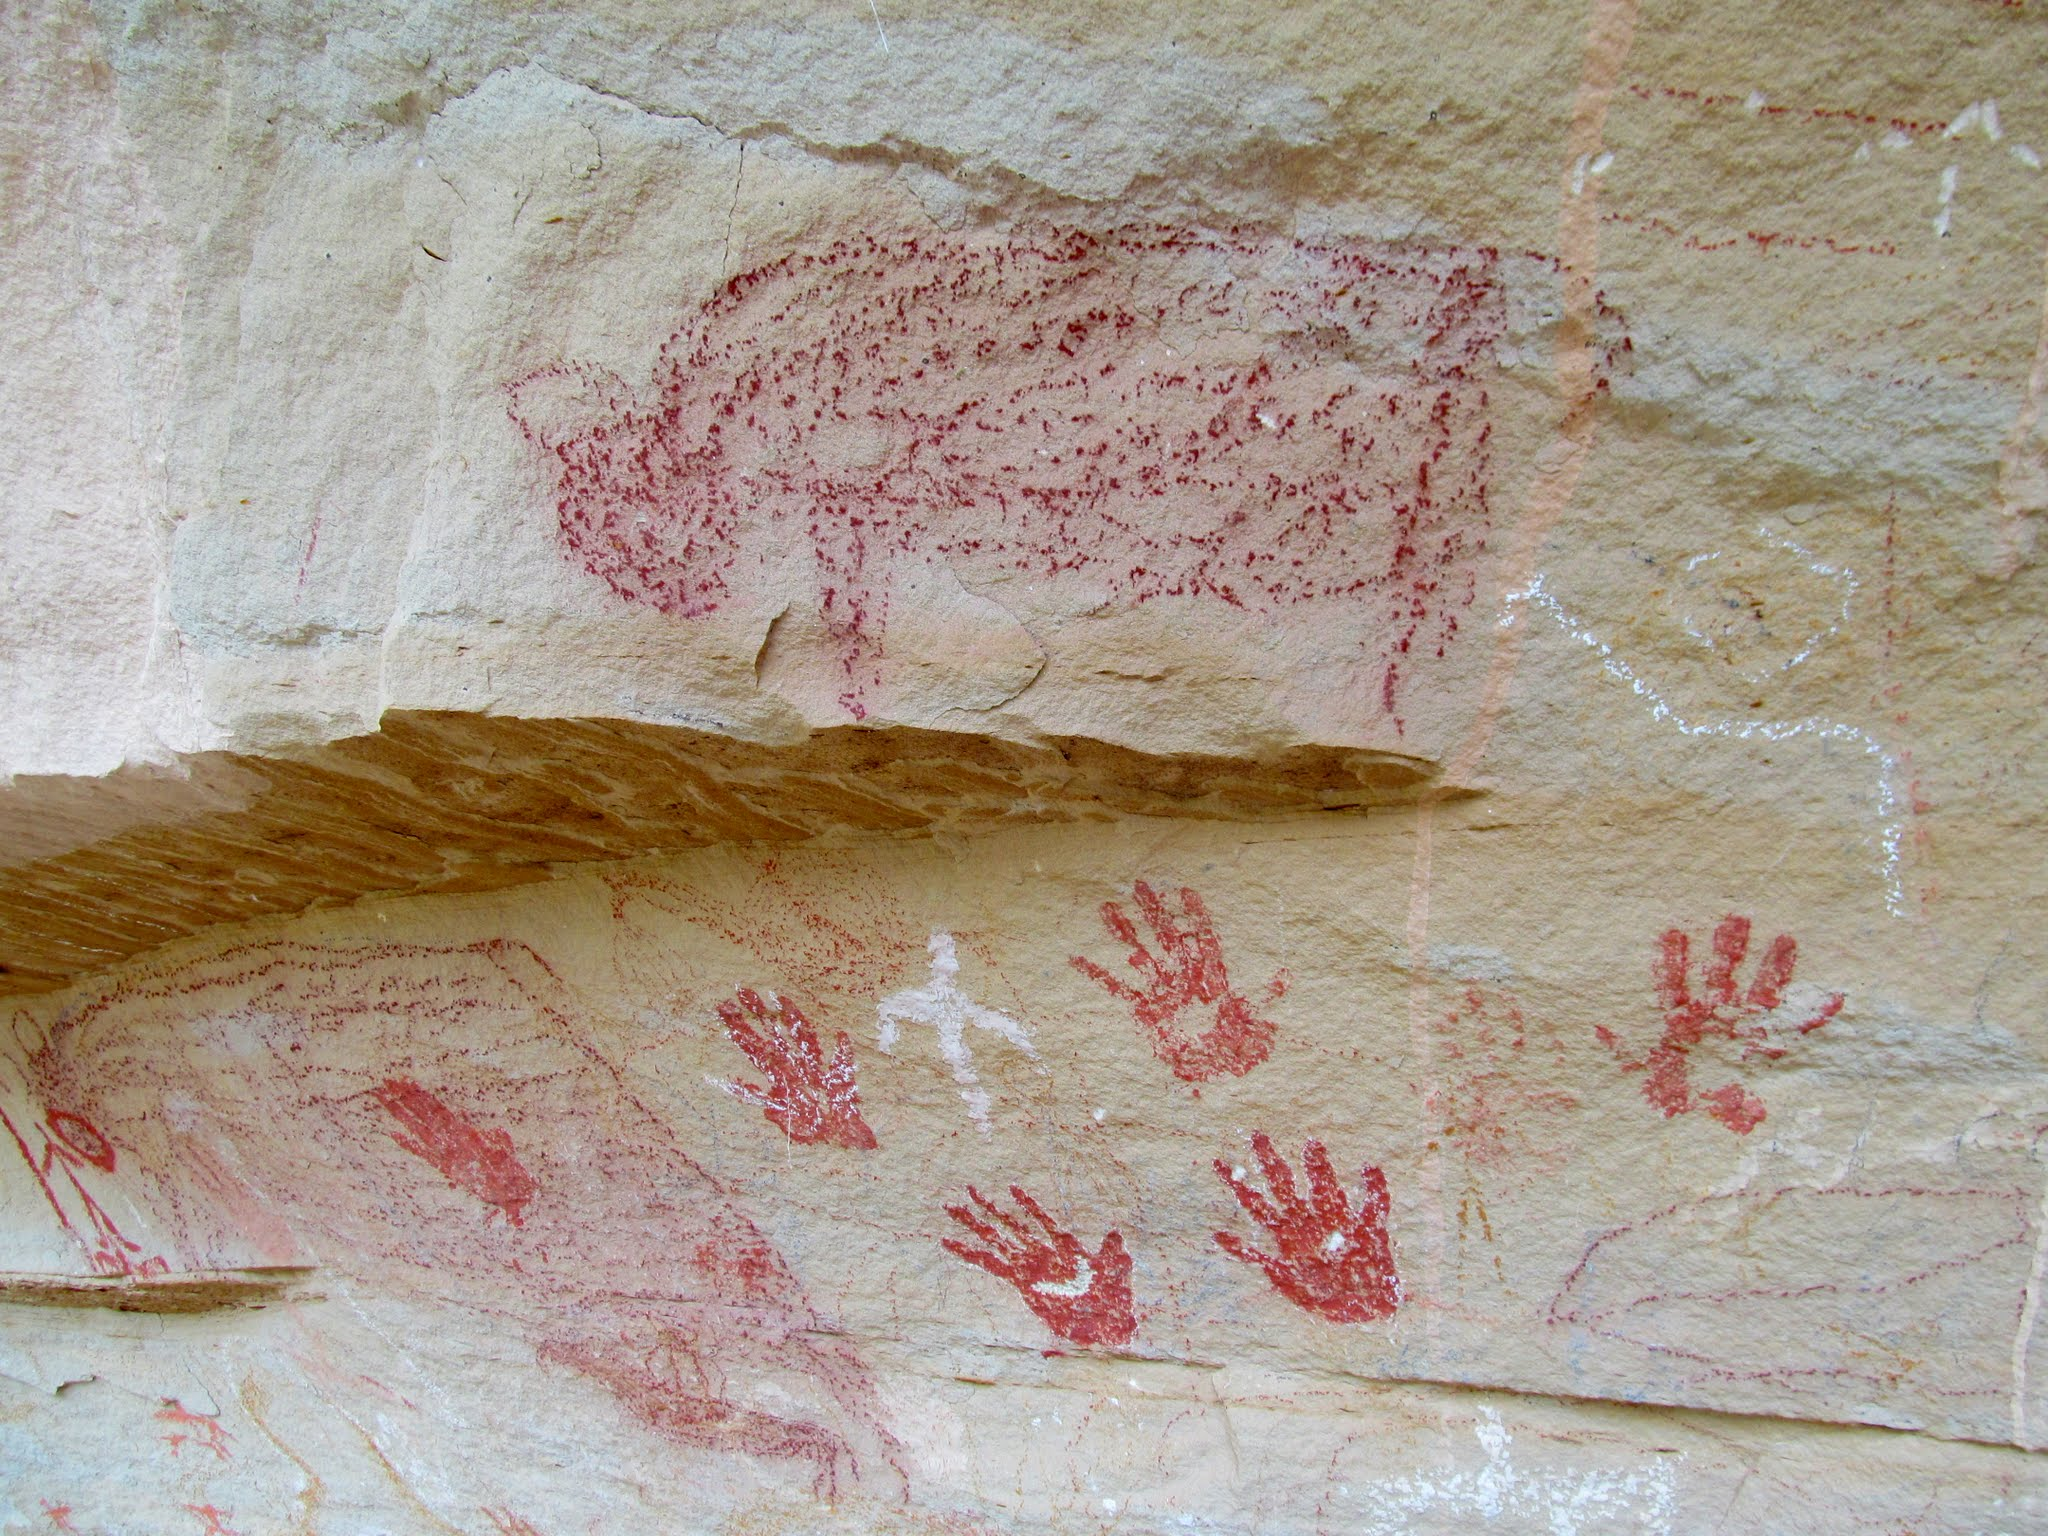 Photo: Ute pictographs